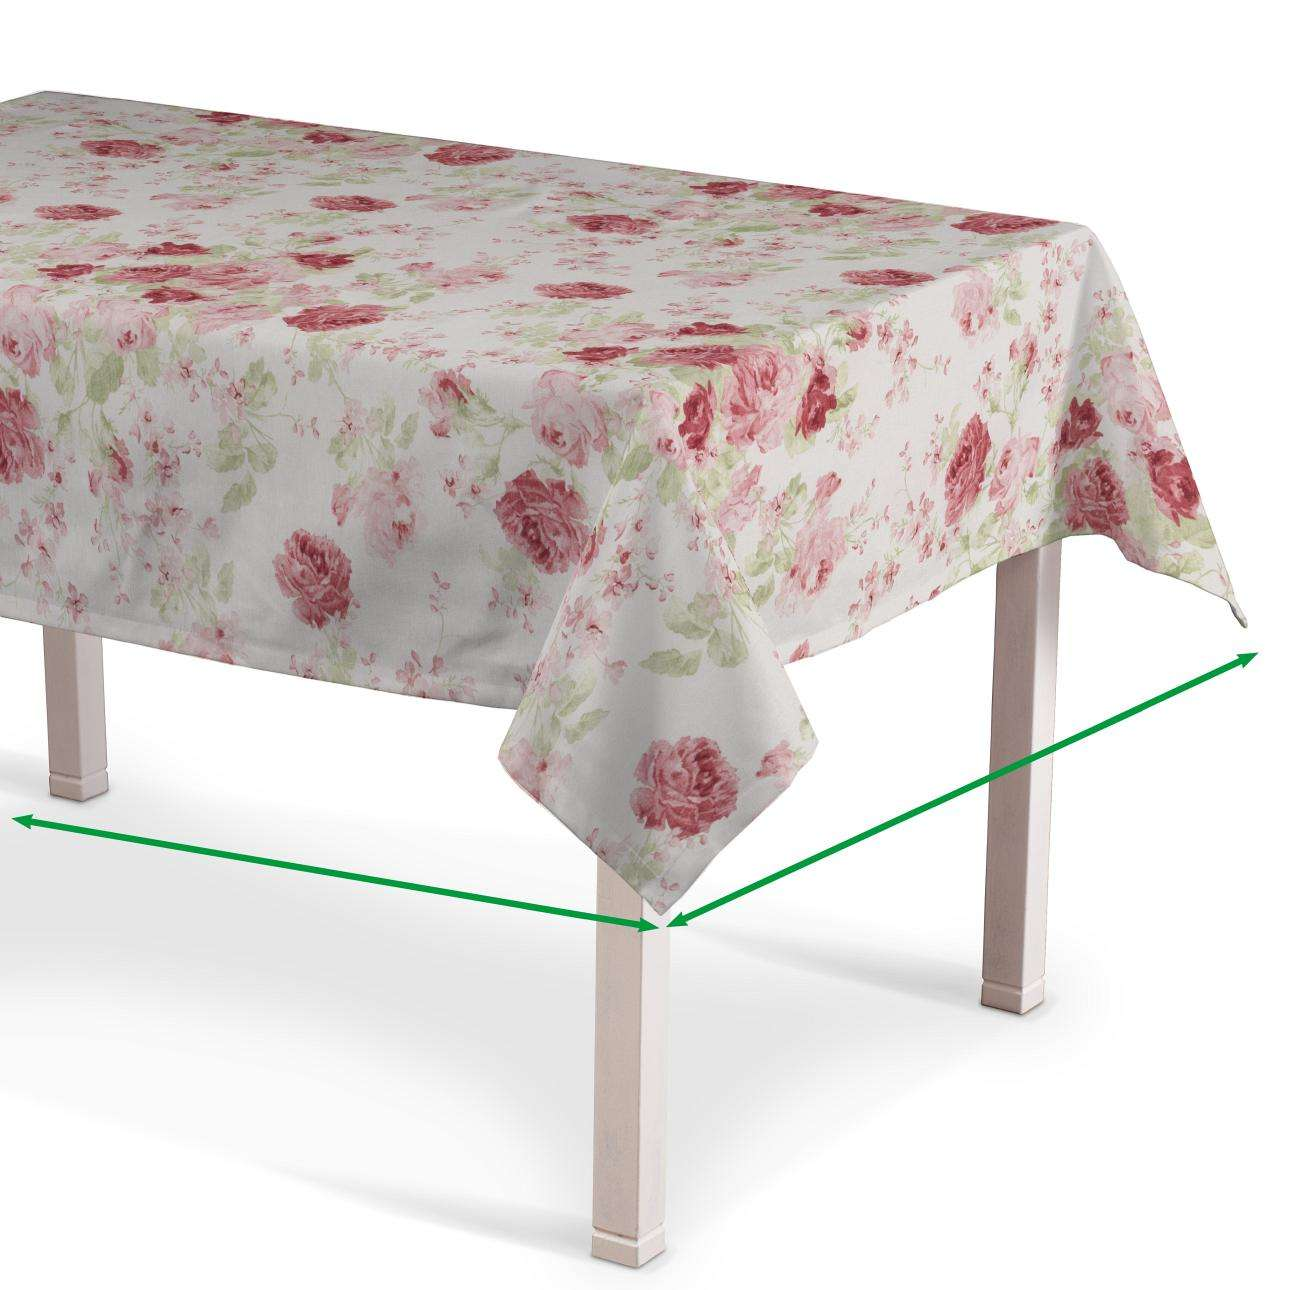 Rectangular tablecloth in collection Flowers, fabric: 140-90